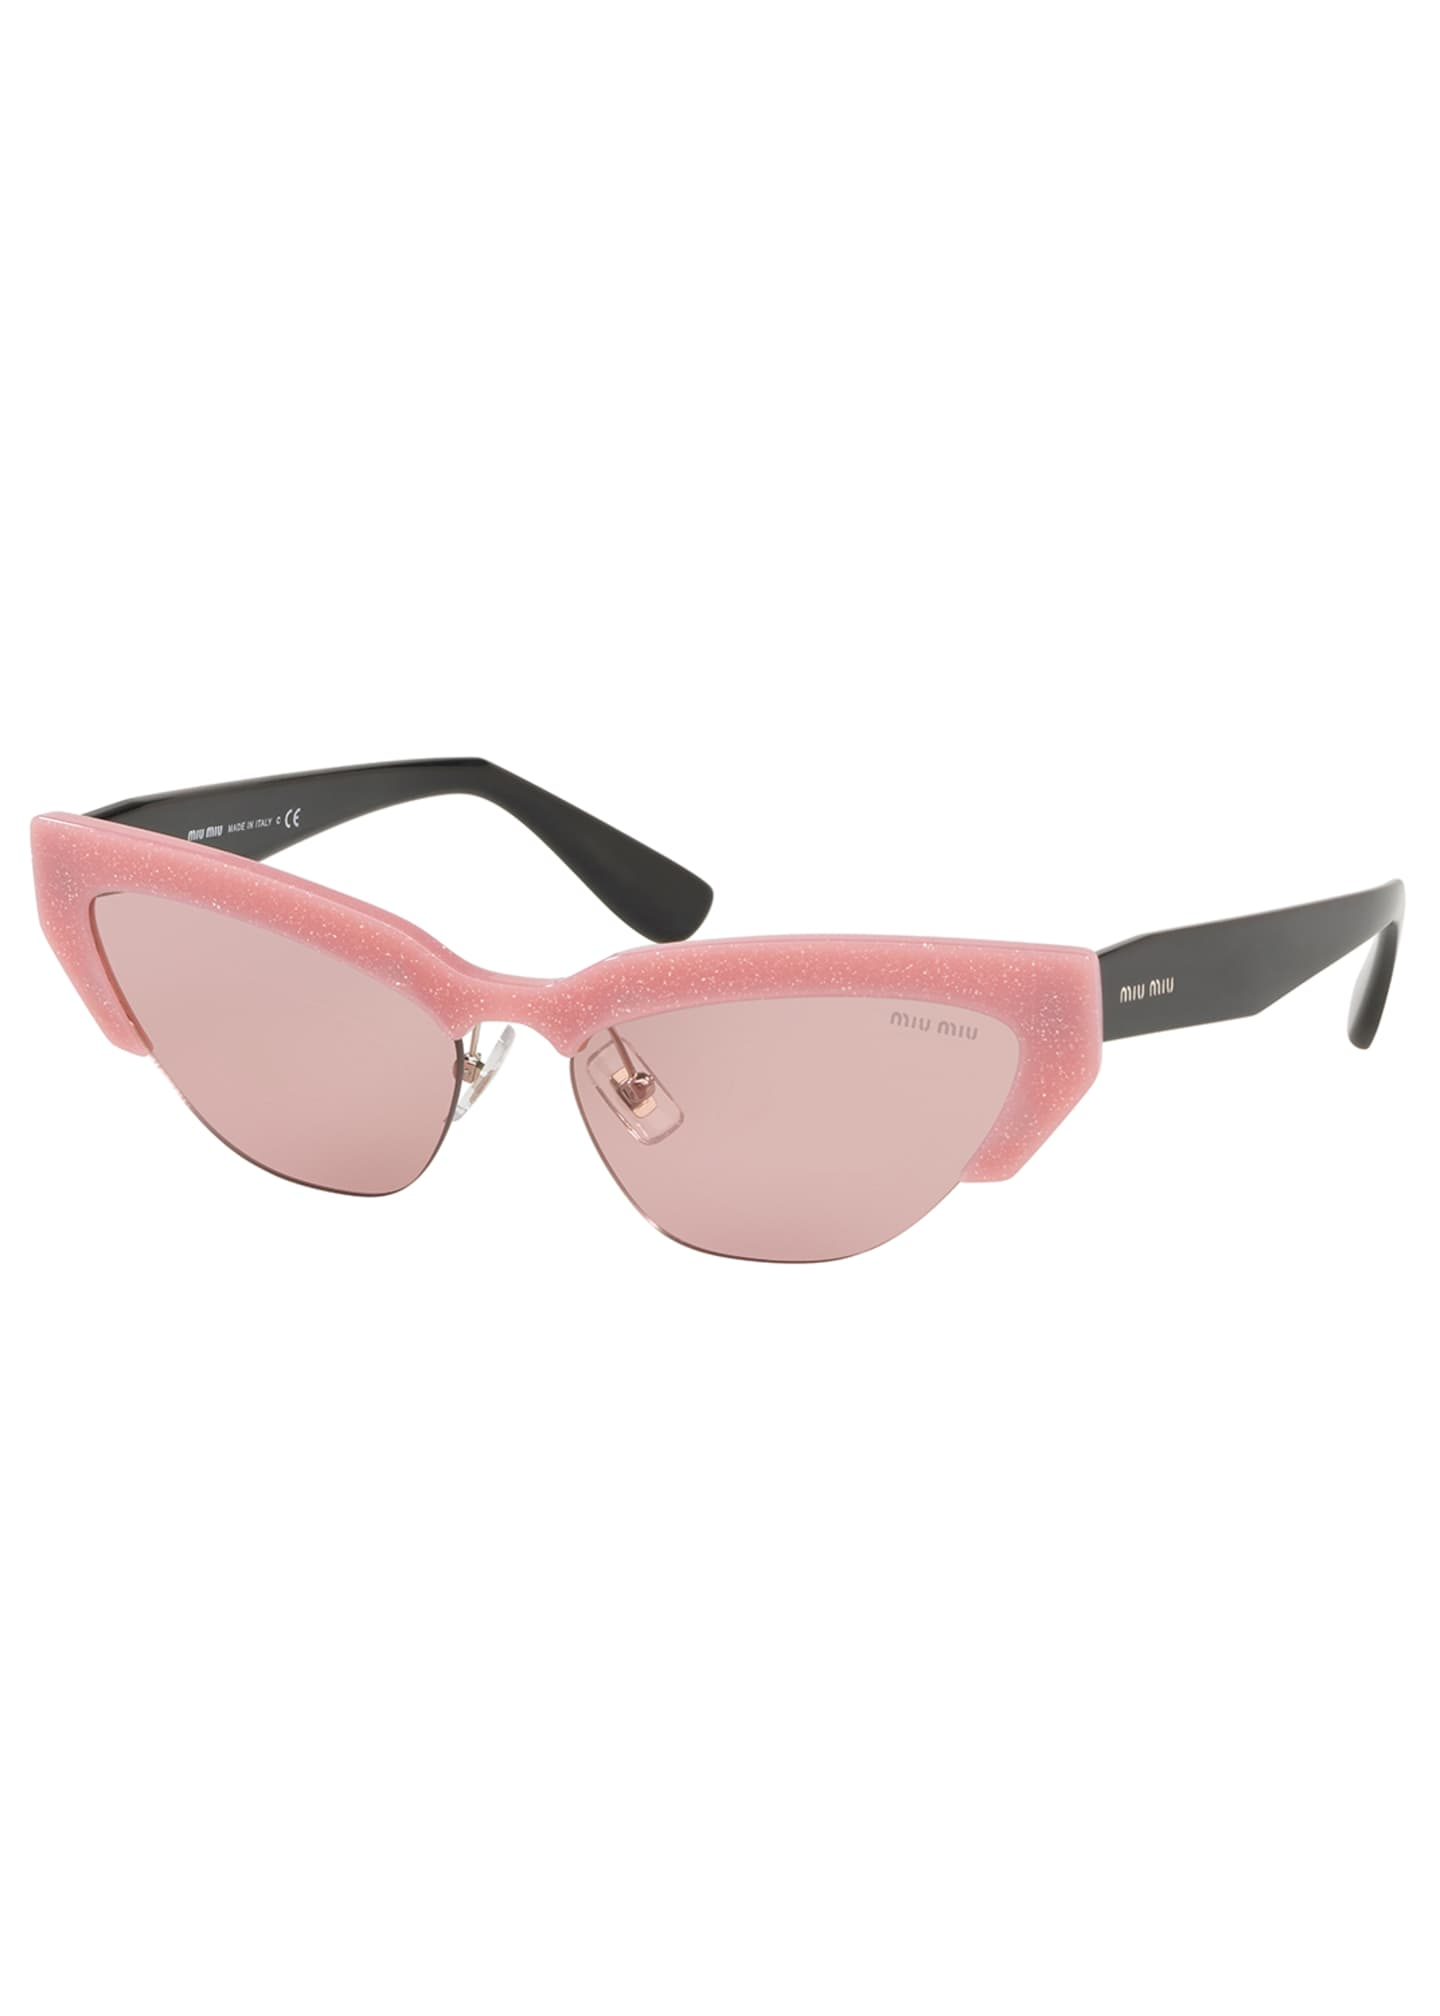 Miu Miu Semi-Rimless Cat-Eye Sunglasses